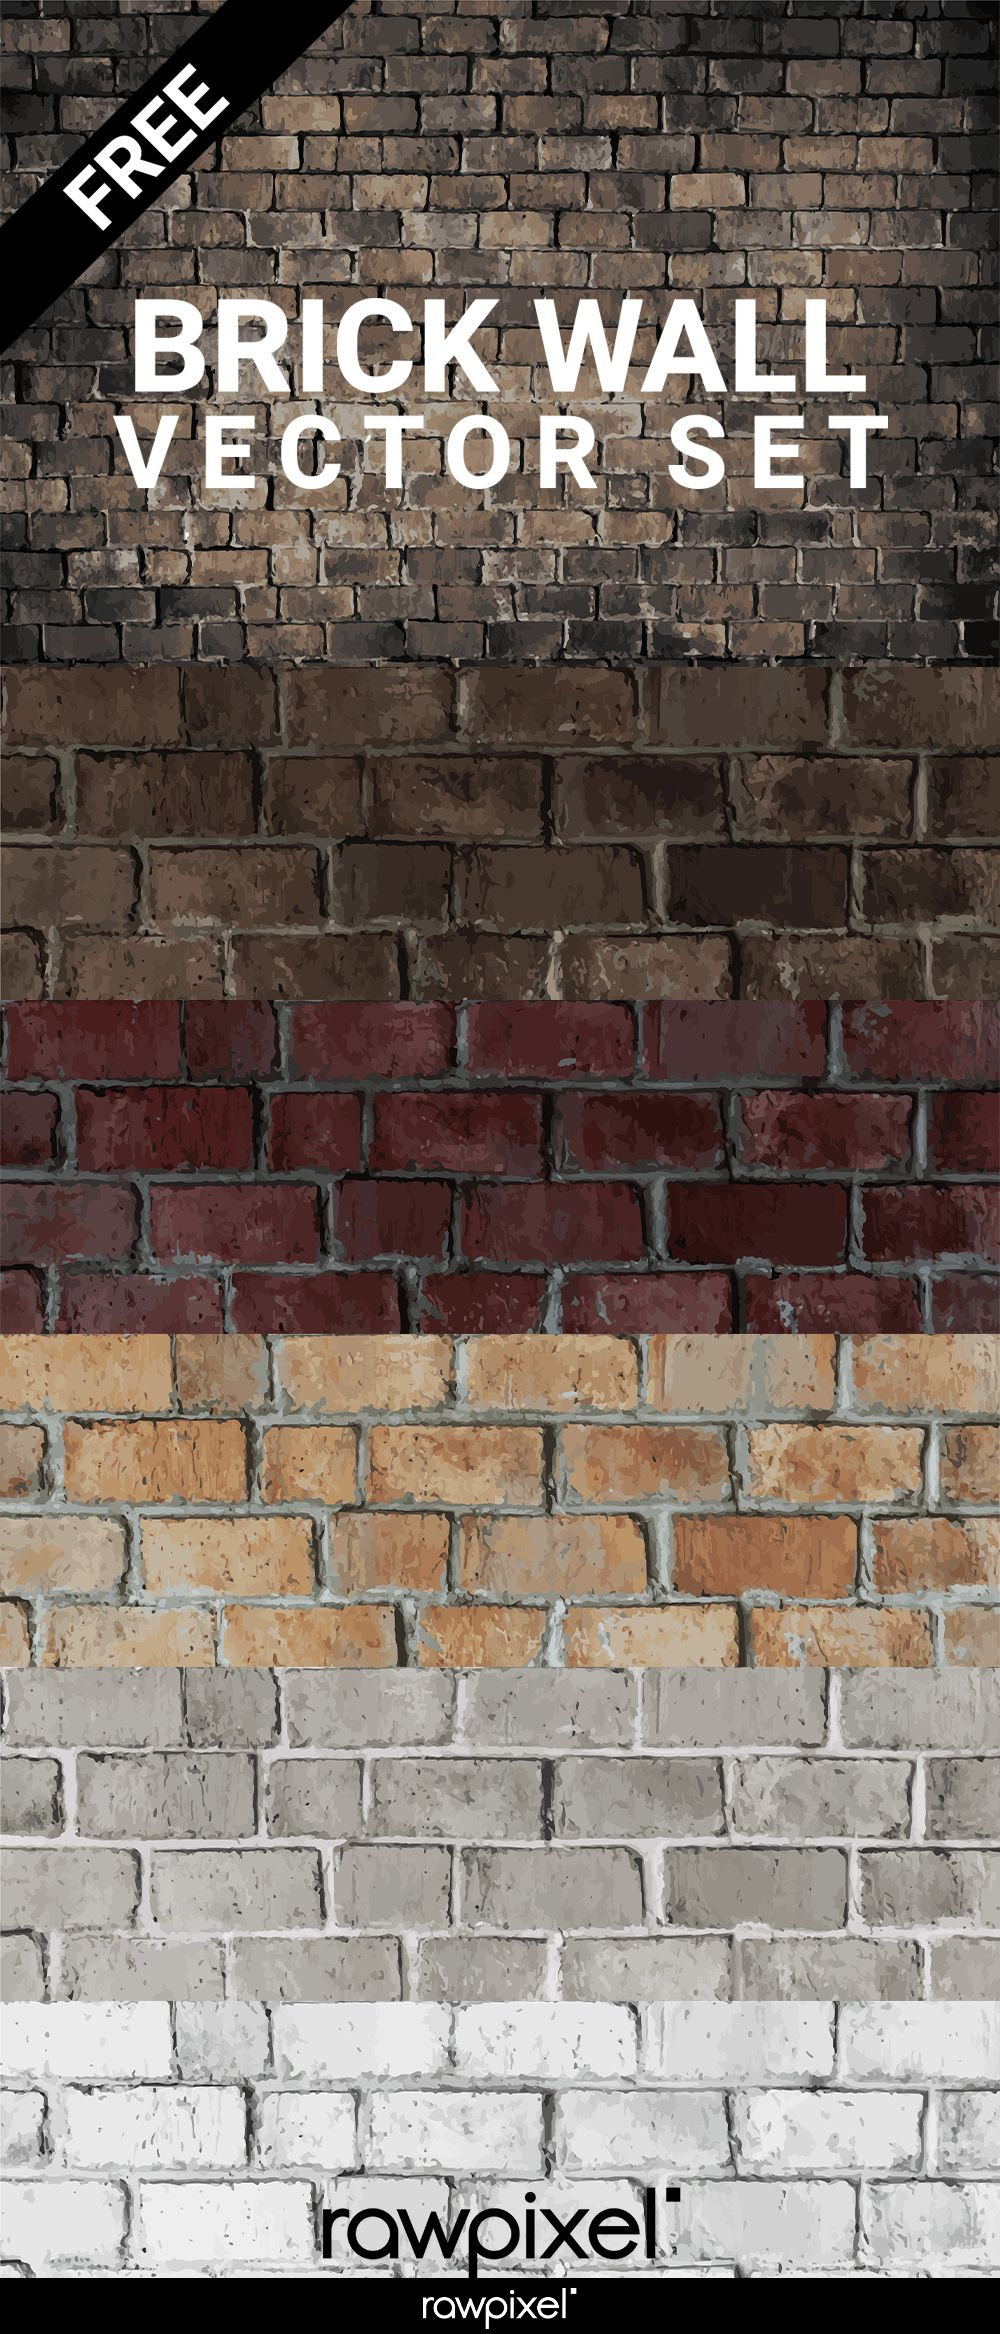 Download Beautiful Free And Premium Royalty Free Brick Wall Vectors As Well As Stock Photos